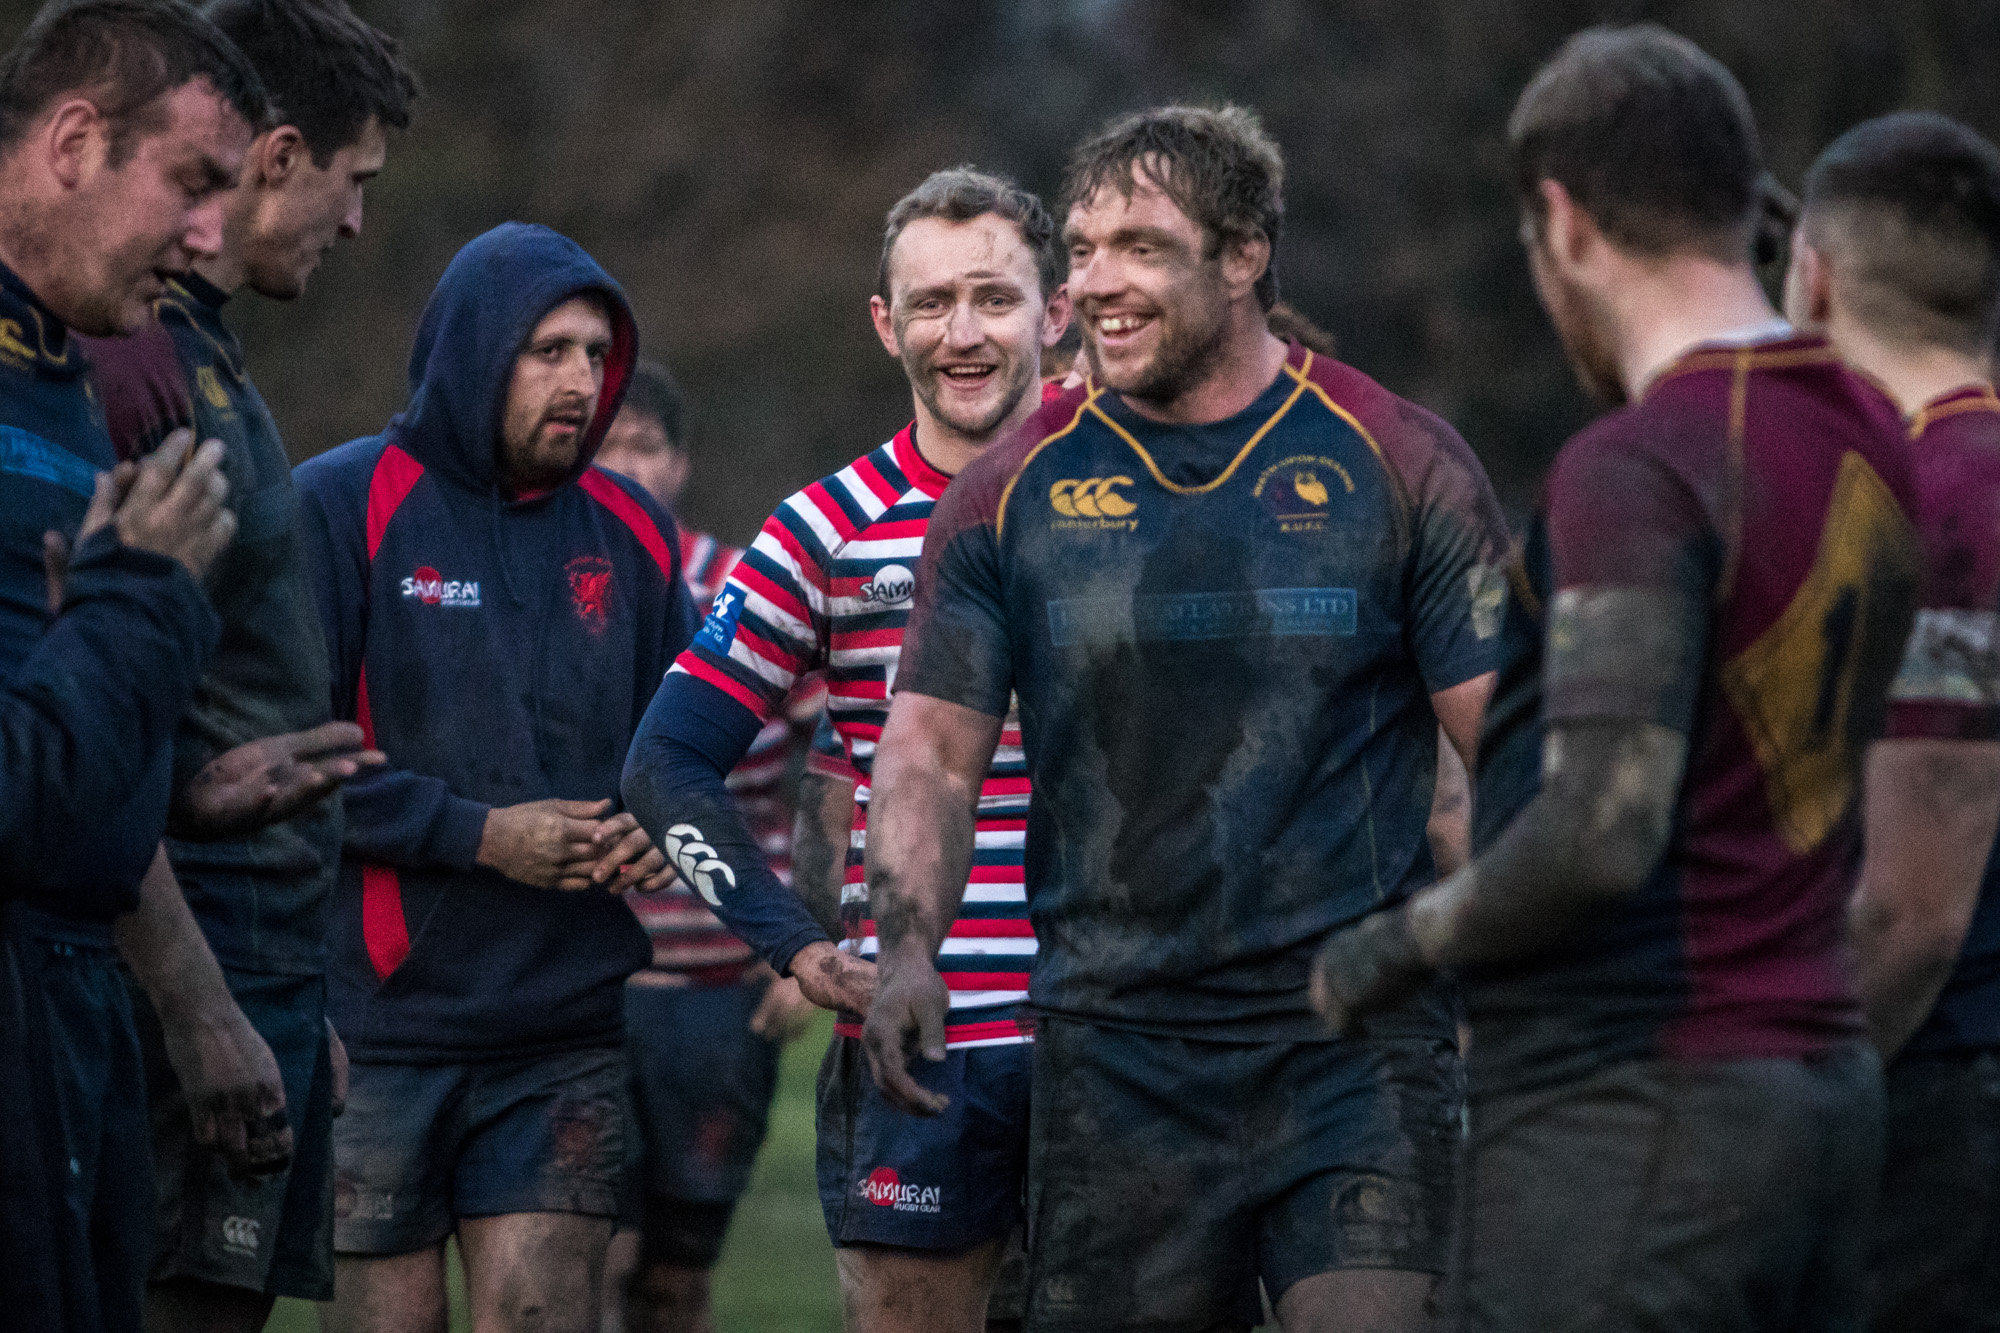 Smiles all round at the end of the game